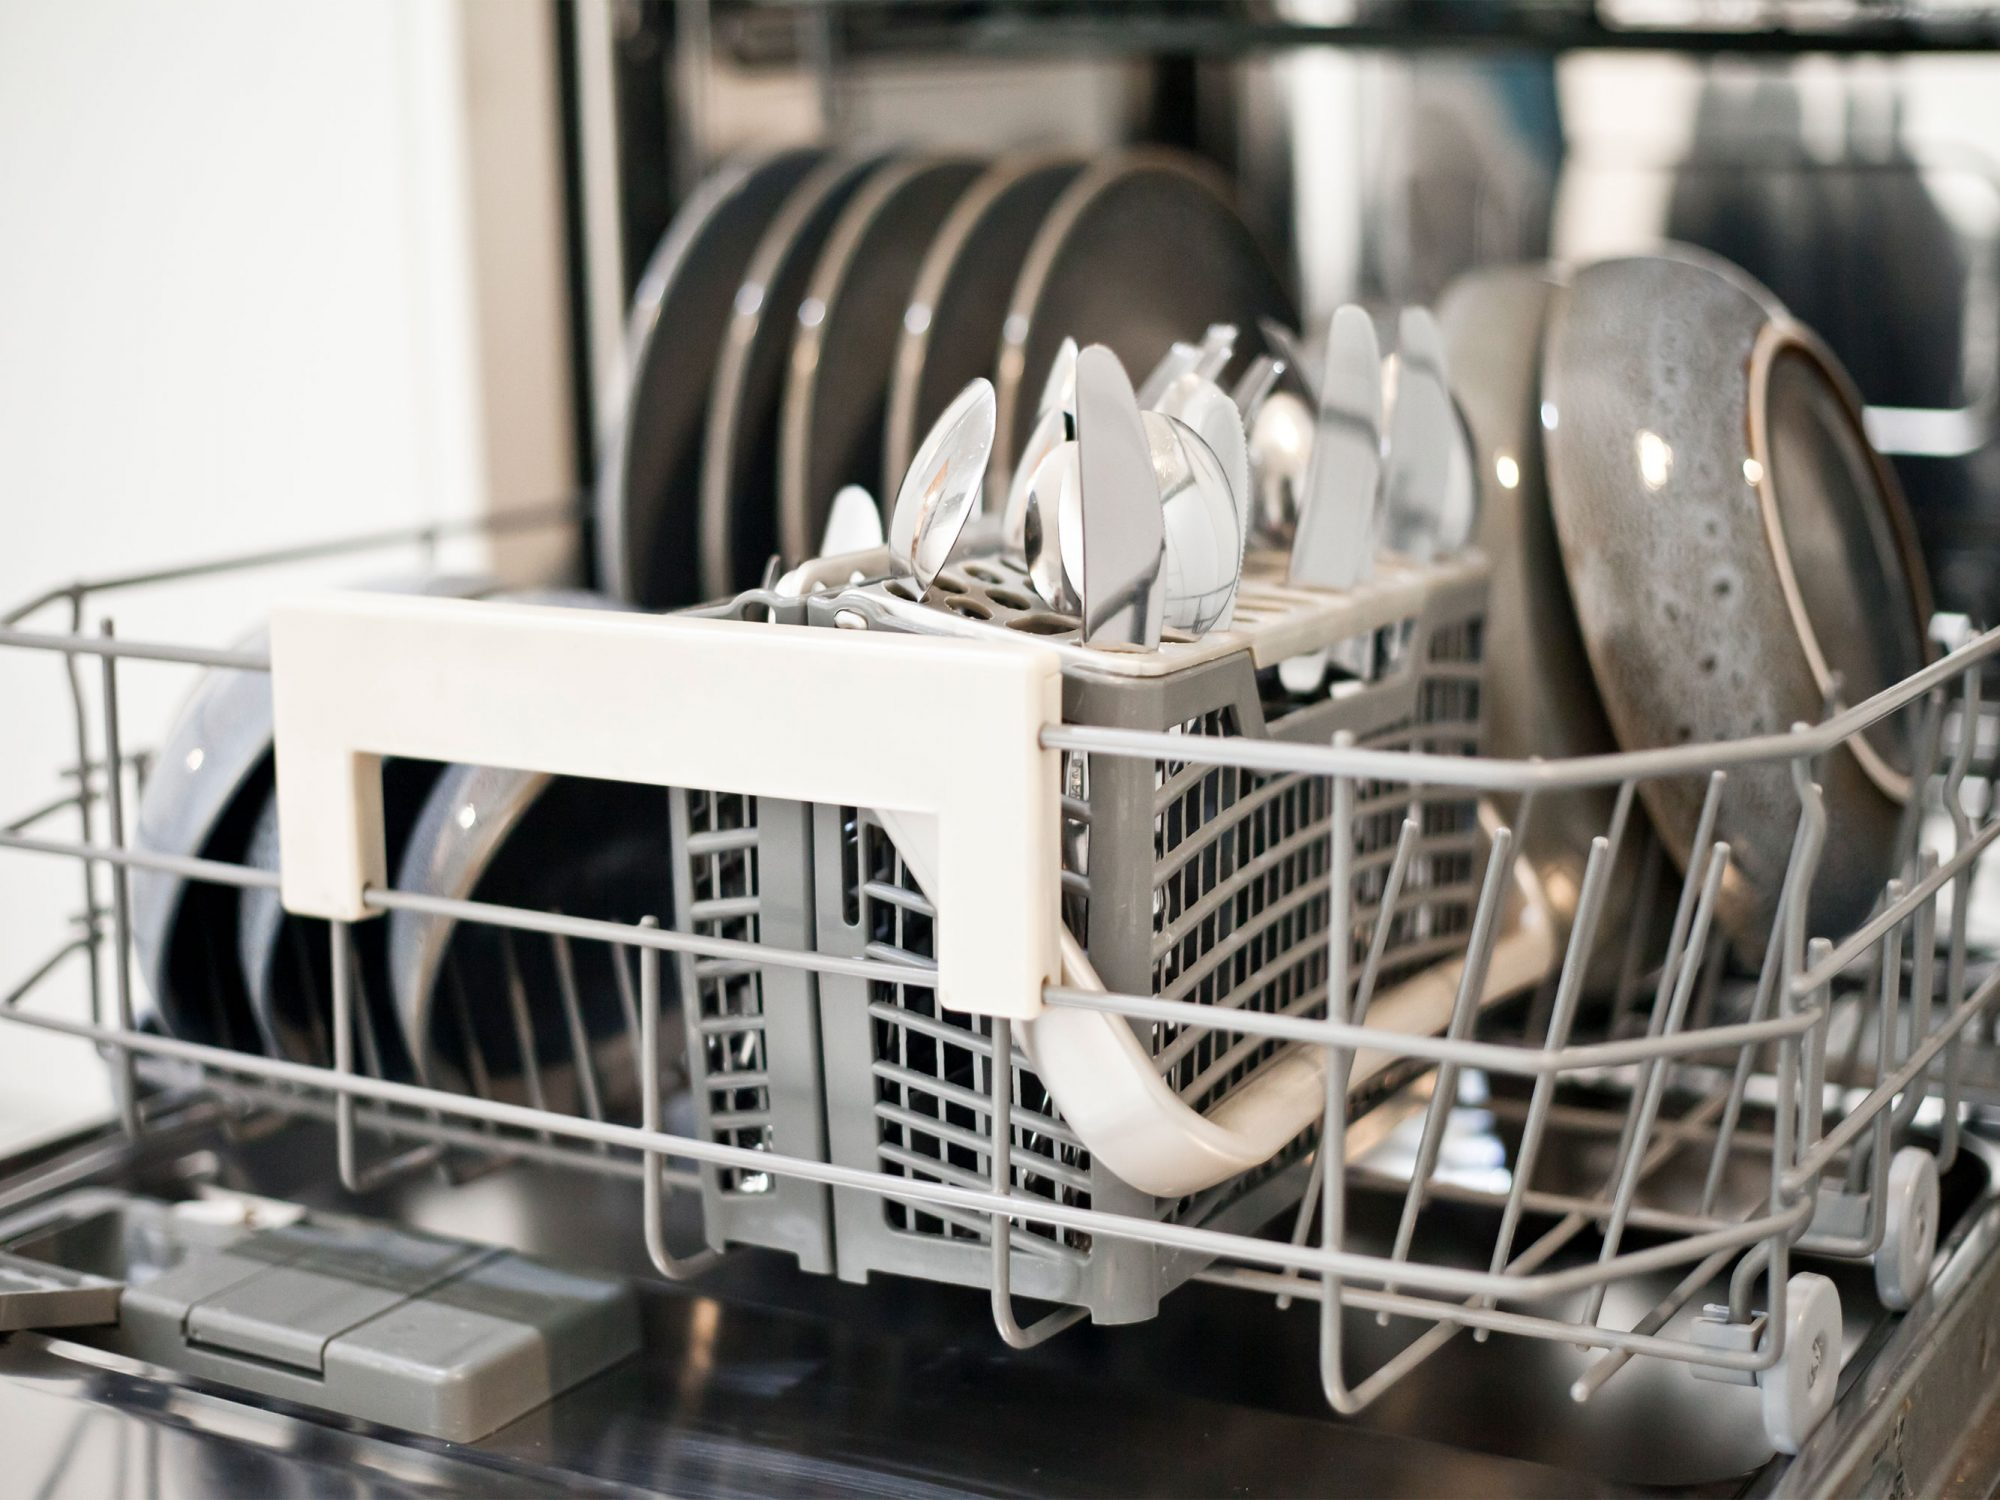 Dishwasher bottom rack loaded with clean dishes